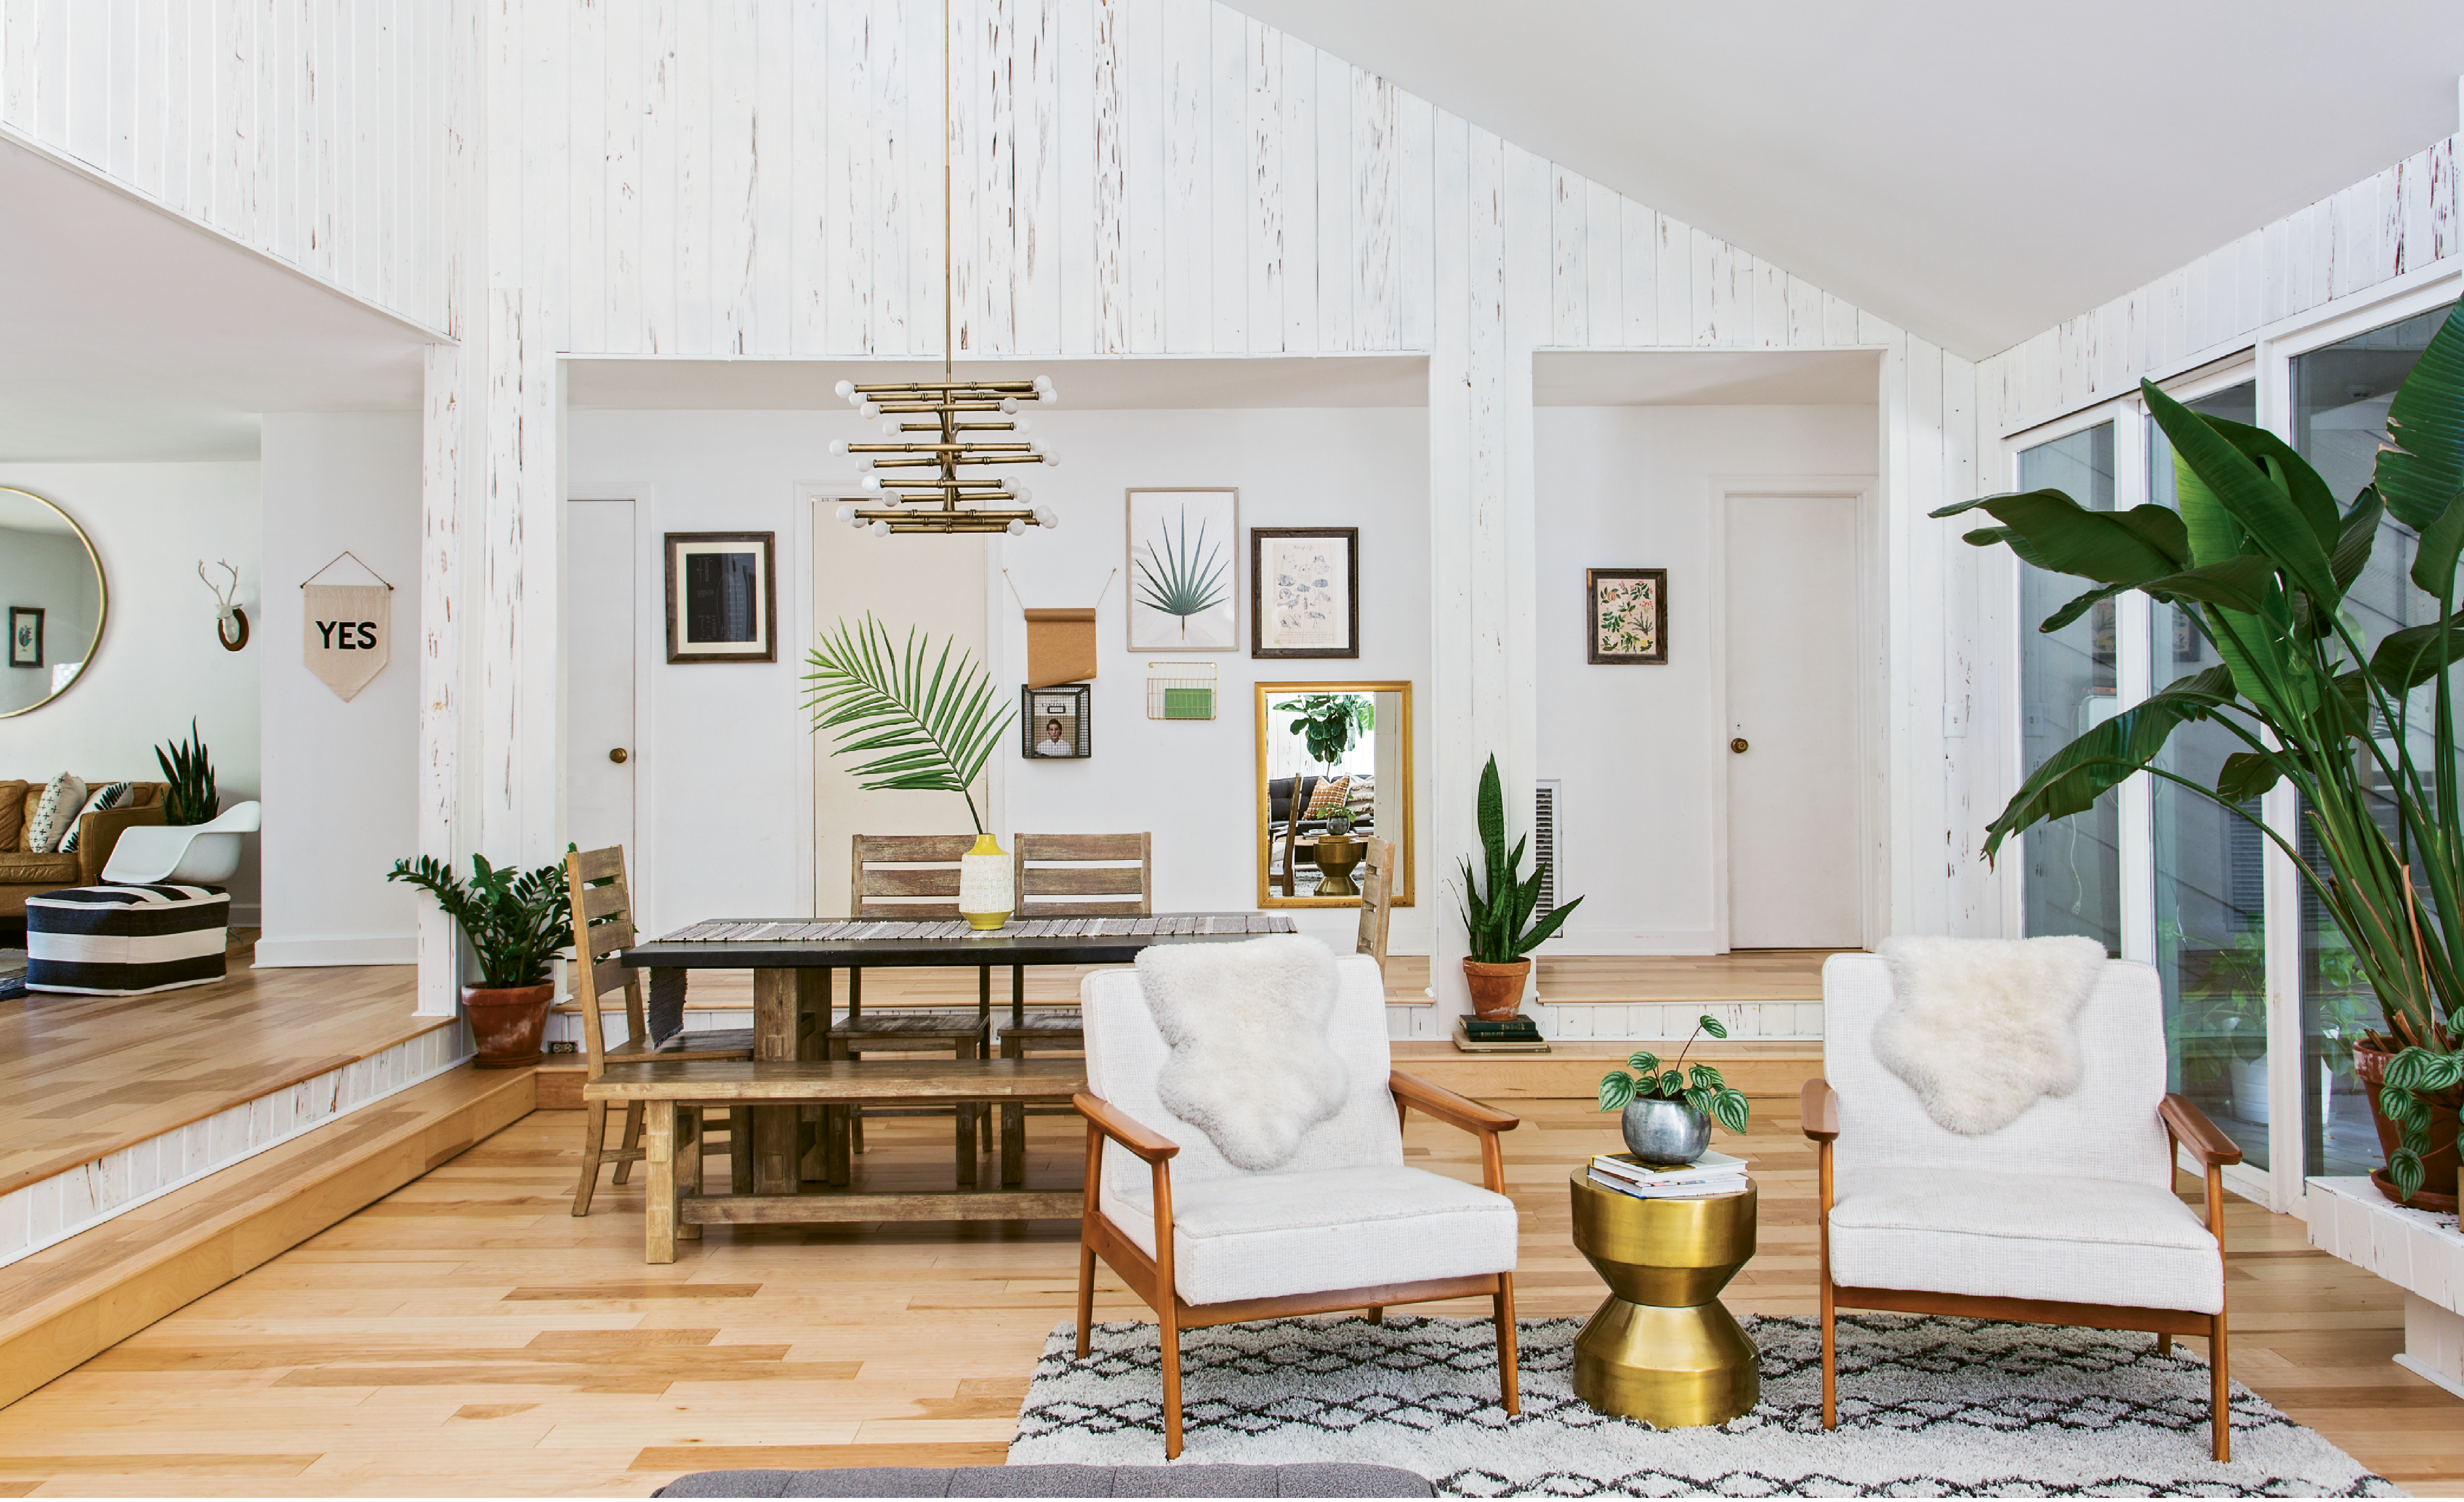 LUXE LOOKS: After almost splurging on a Jonathan Adler chandelier, Erin spotted a similar piece for less than $100 on Overstock.com; the steal now hangs over the dining room table. House plants and botanical prints complement the wood grain in the original pecky cypress walls.